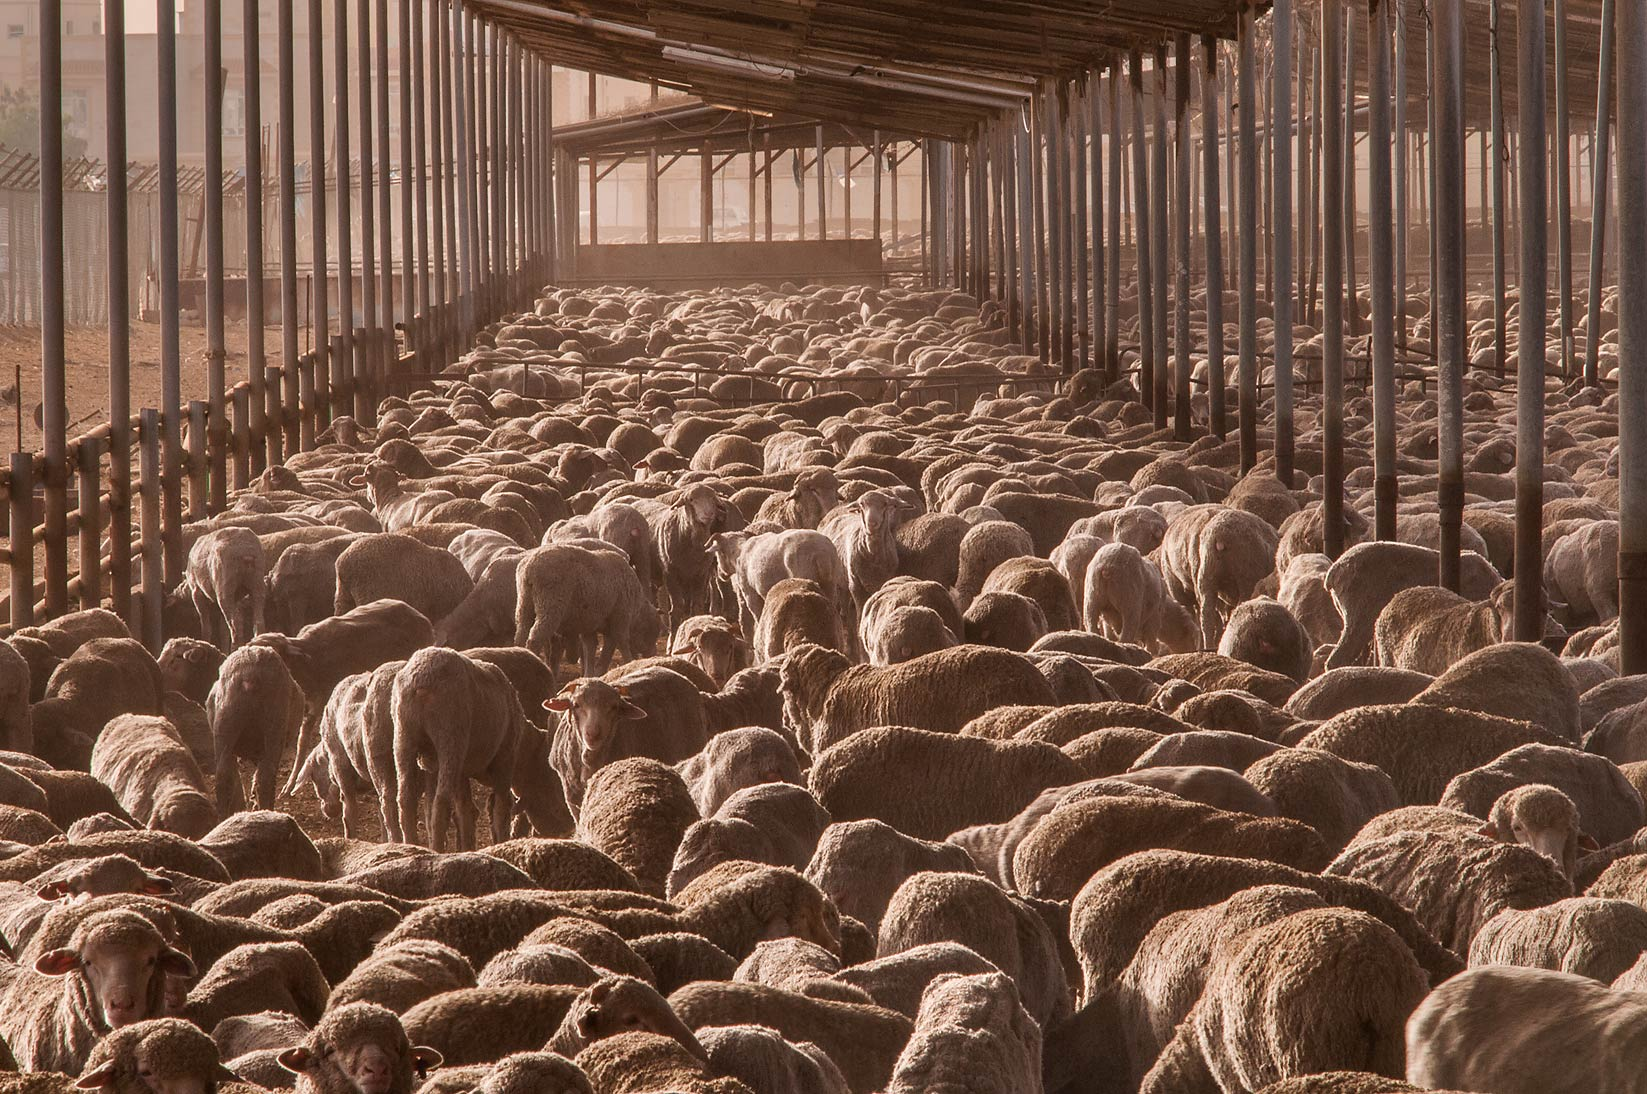 Australian sheep overcrowding in a feedlot of...in Abu Hamour at morning. Doha, Qatar